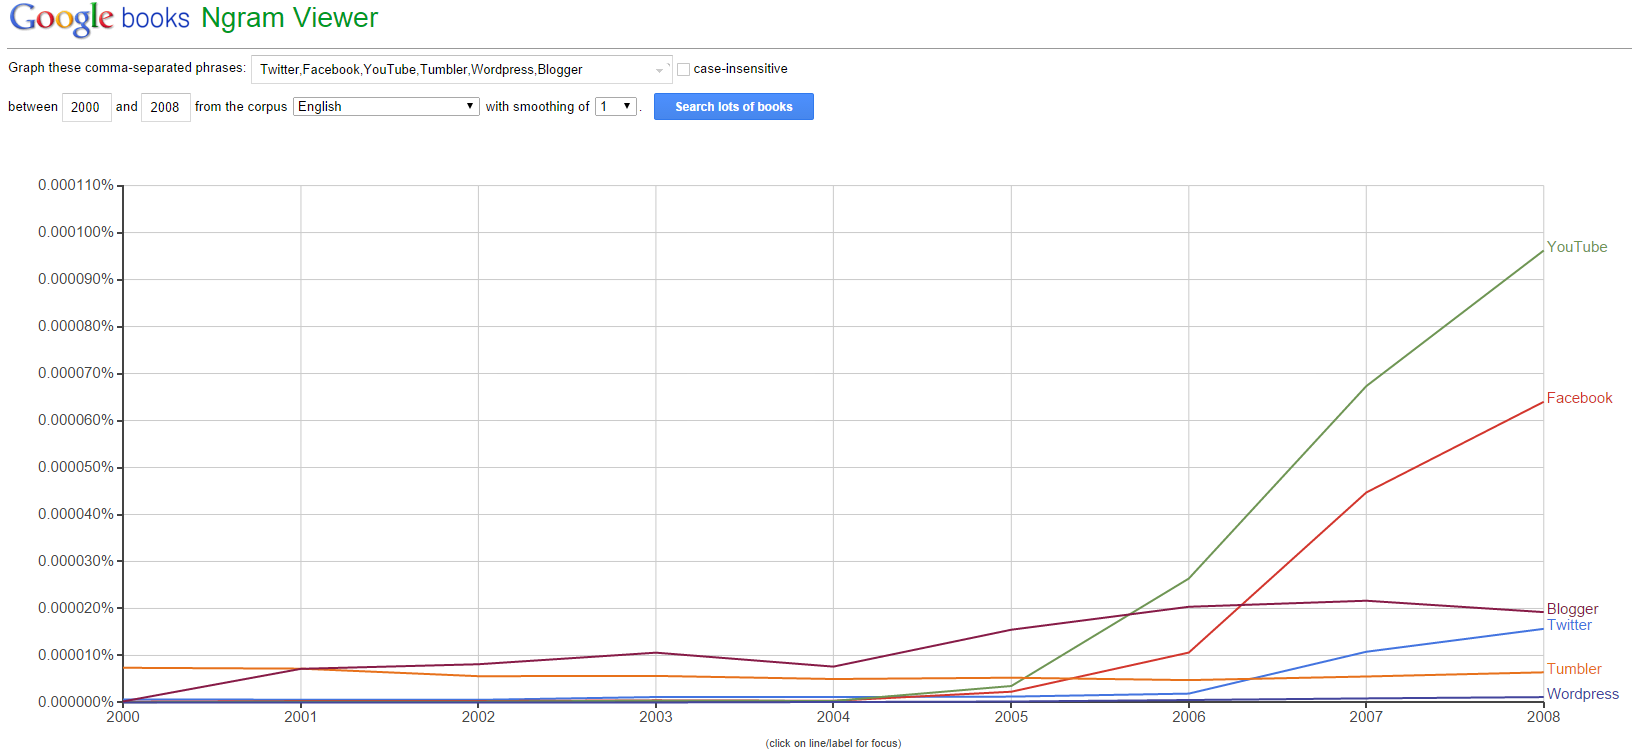 Twitter,Facebook,YouTube,Tumbler,Wordpress,Blogger Ngram Viewer